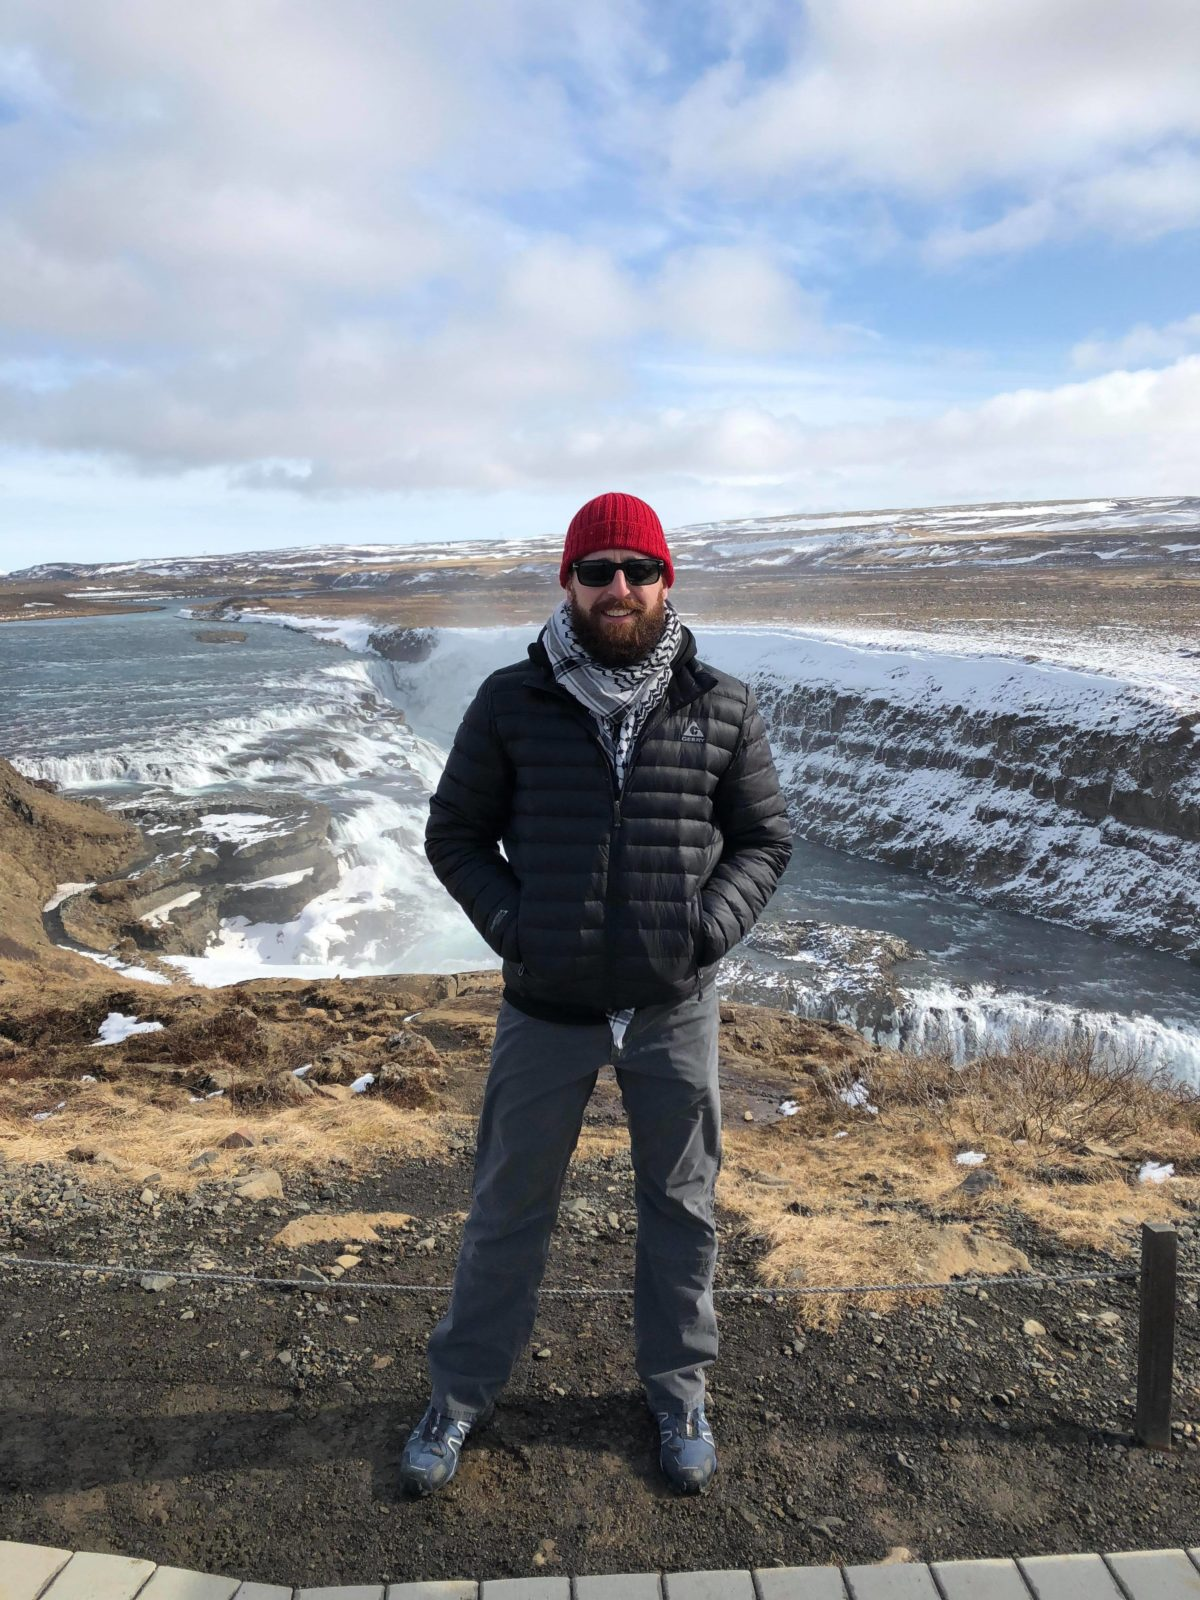 Red cap on iceland